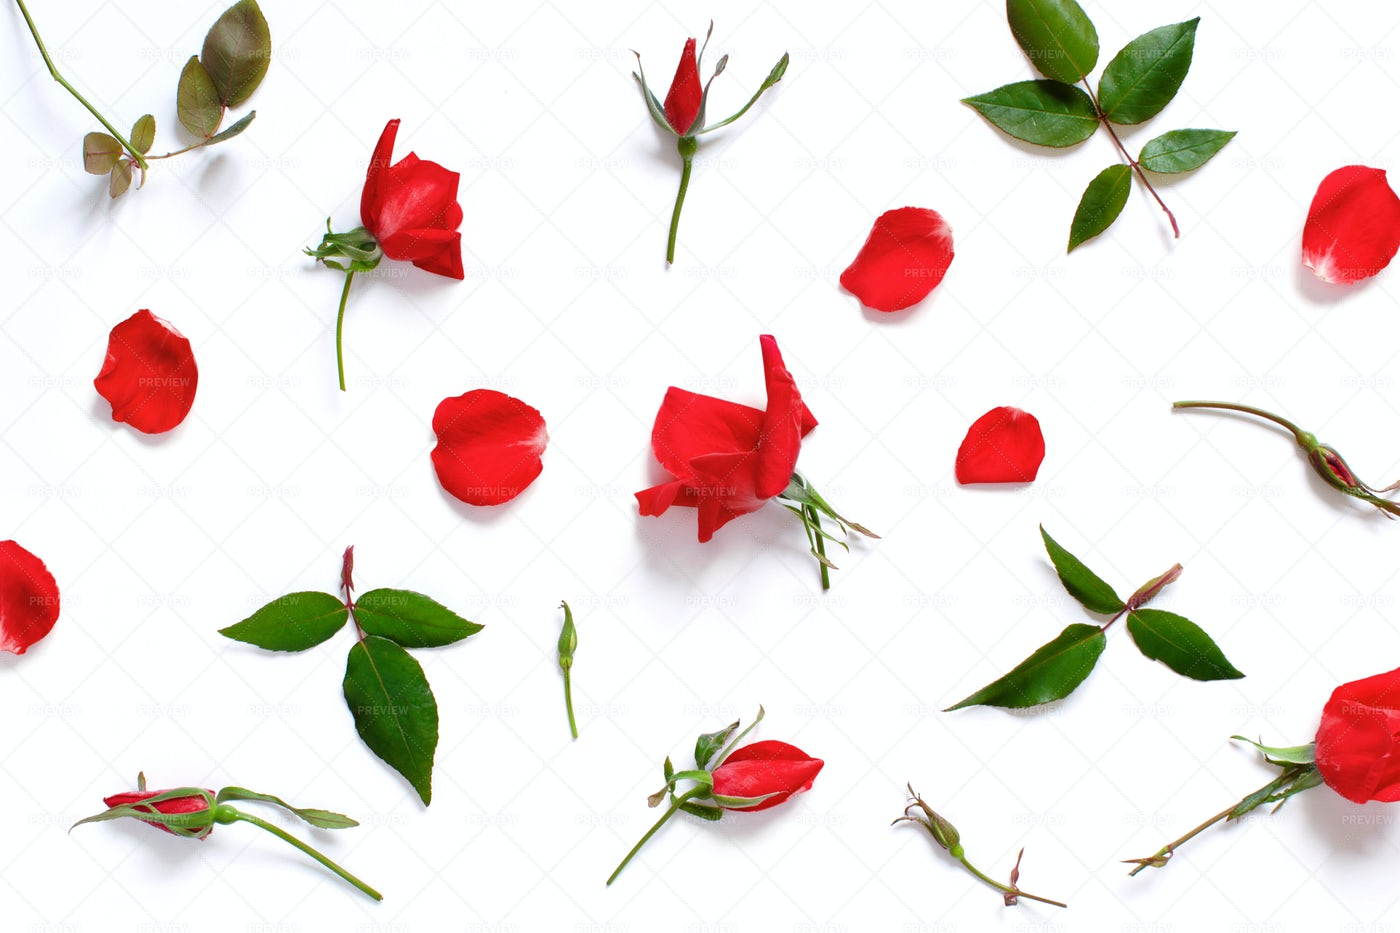 Rose Petals On A White Background: Stock Photos